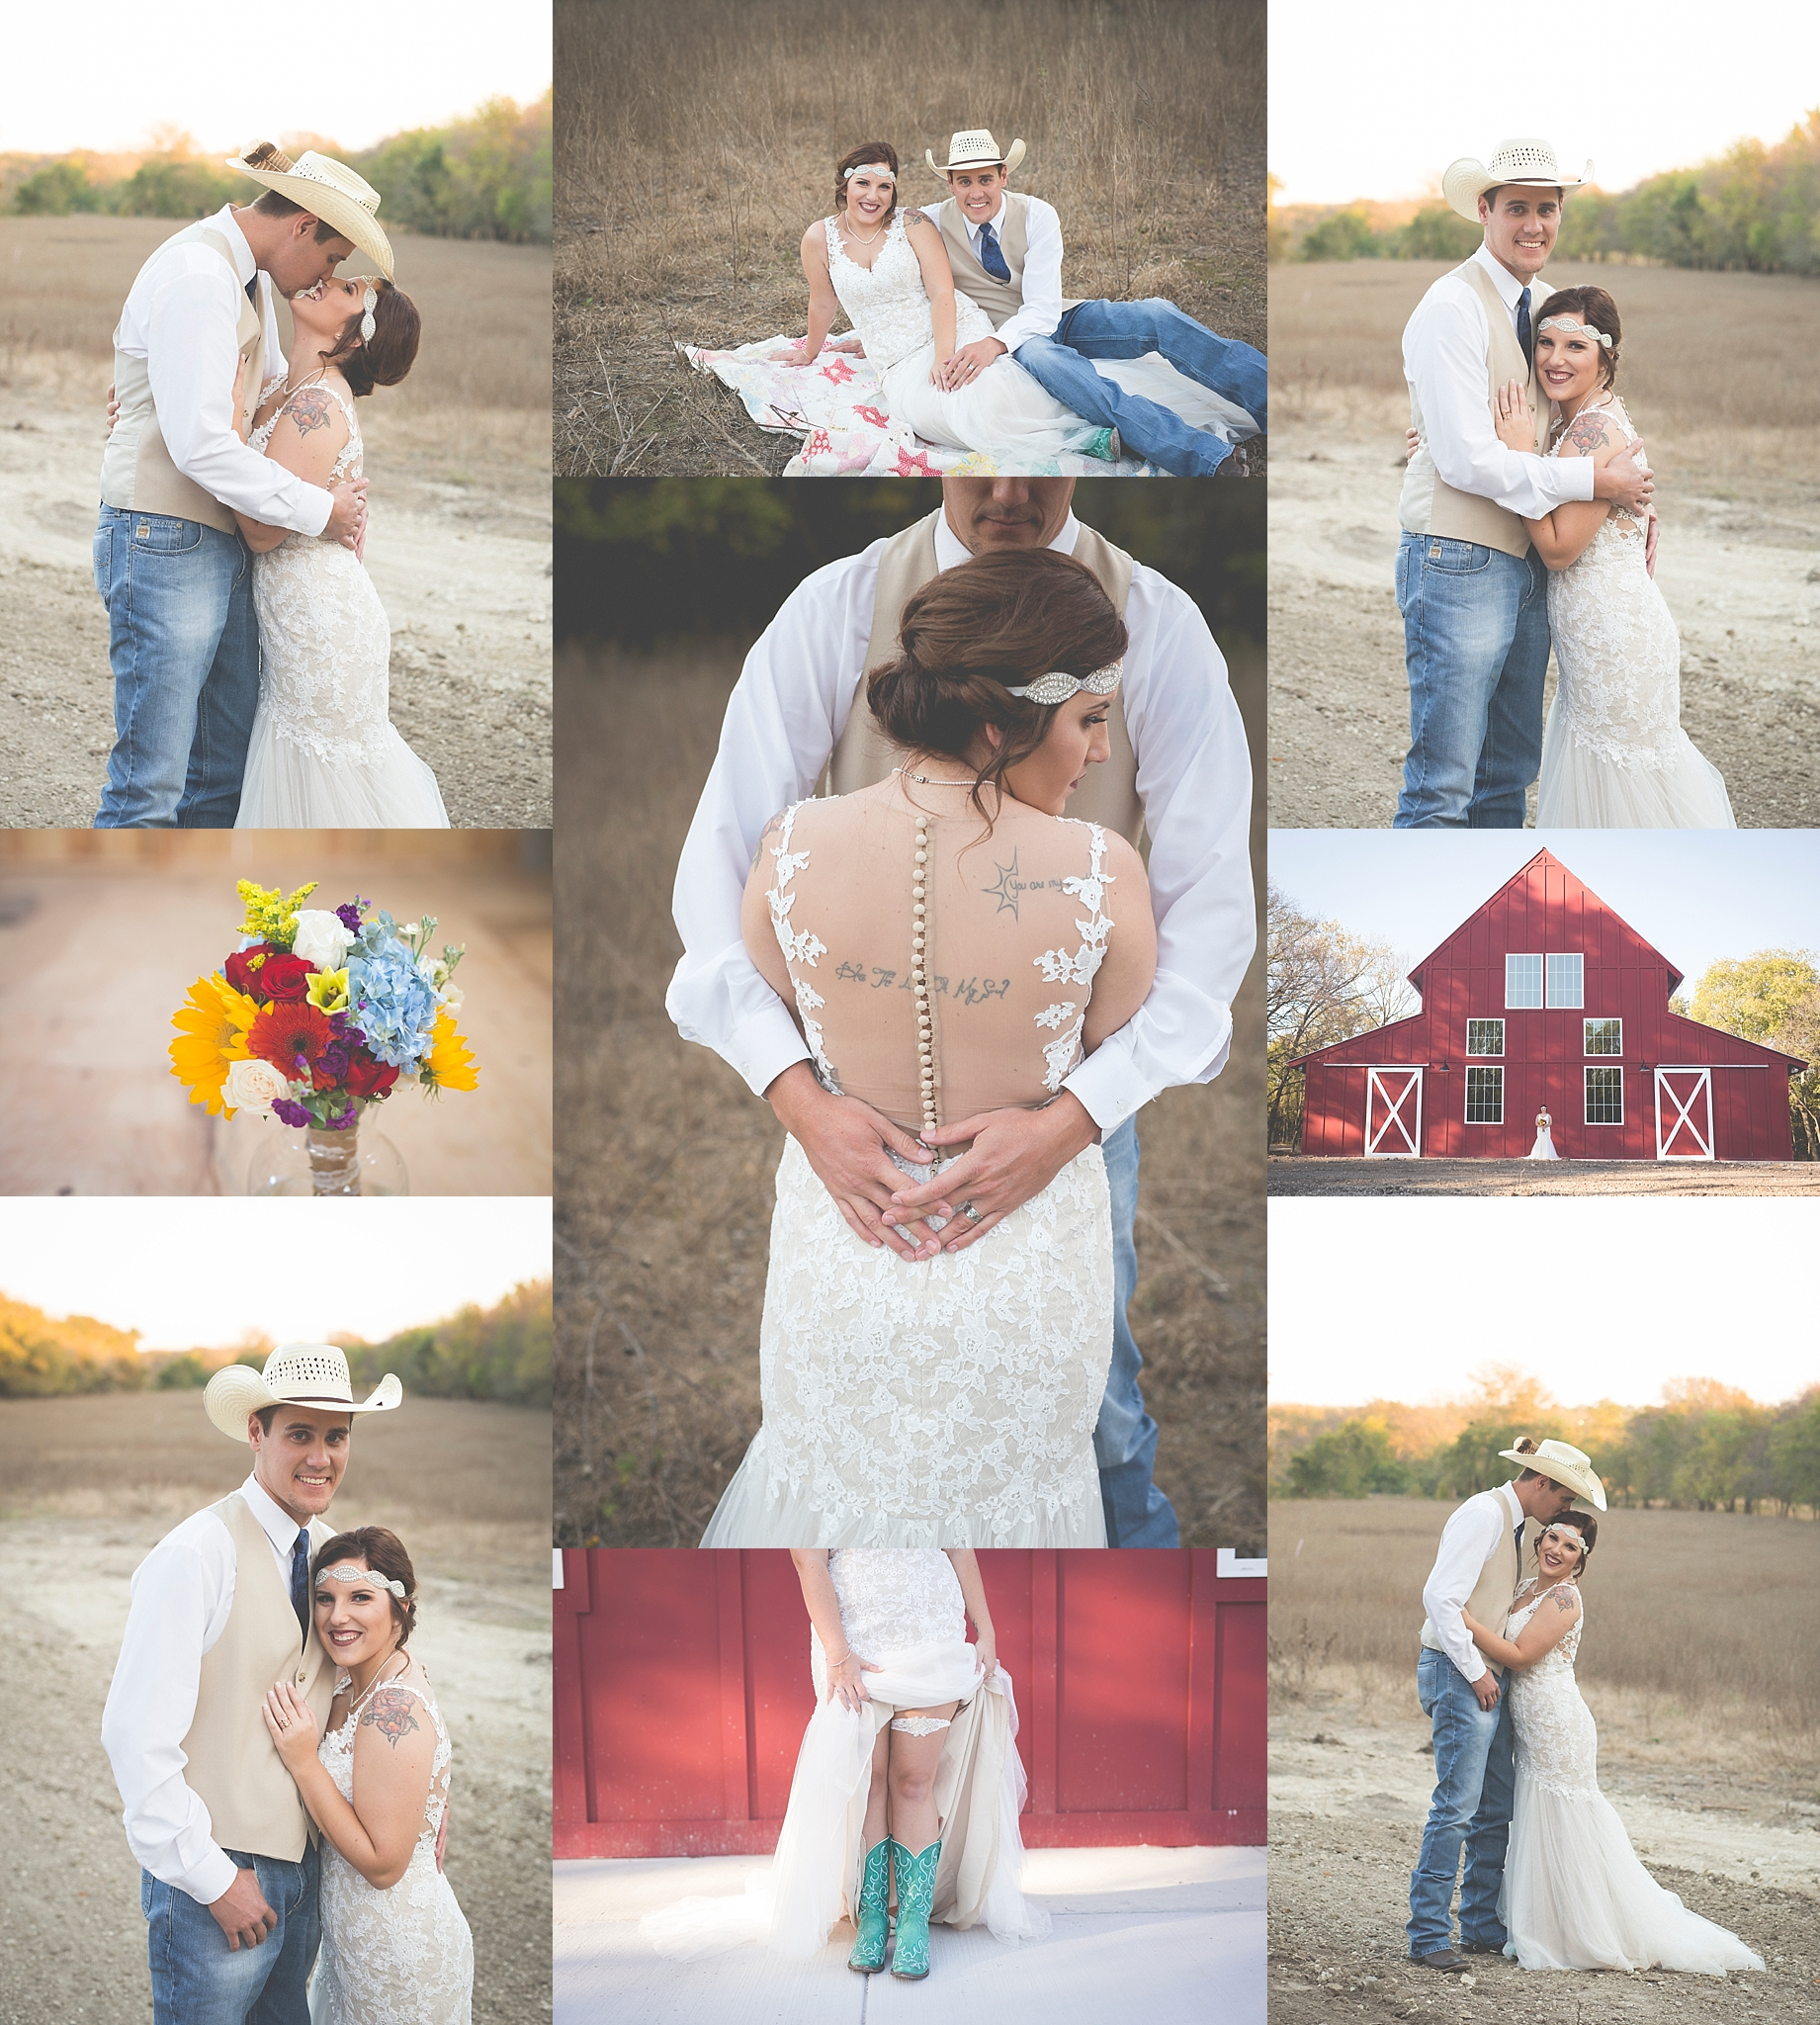 engagement-photos-love-wedding-como-columbia-missouri-jefferson-city-lake-ozark-springfield-city-couple-barn.jpg